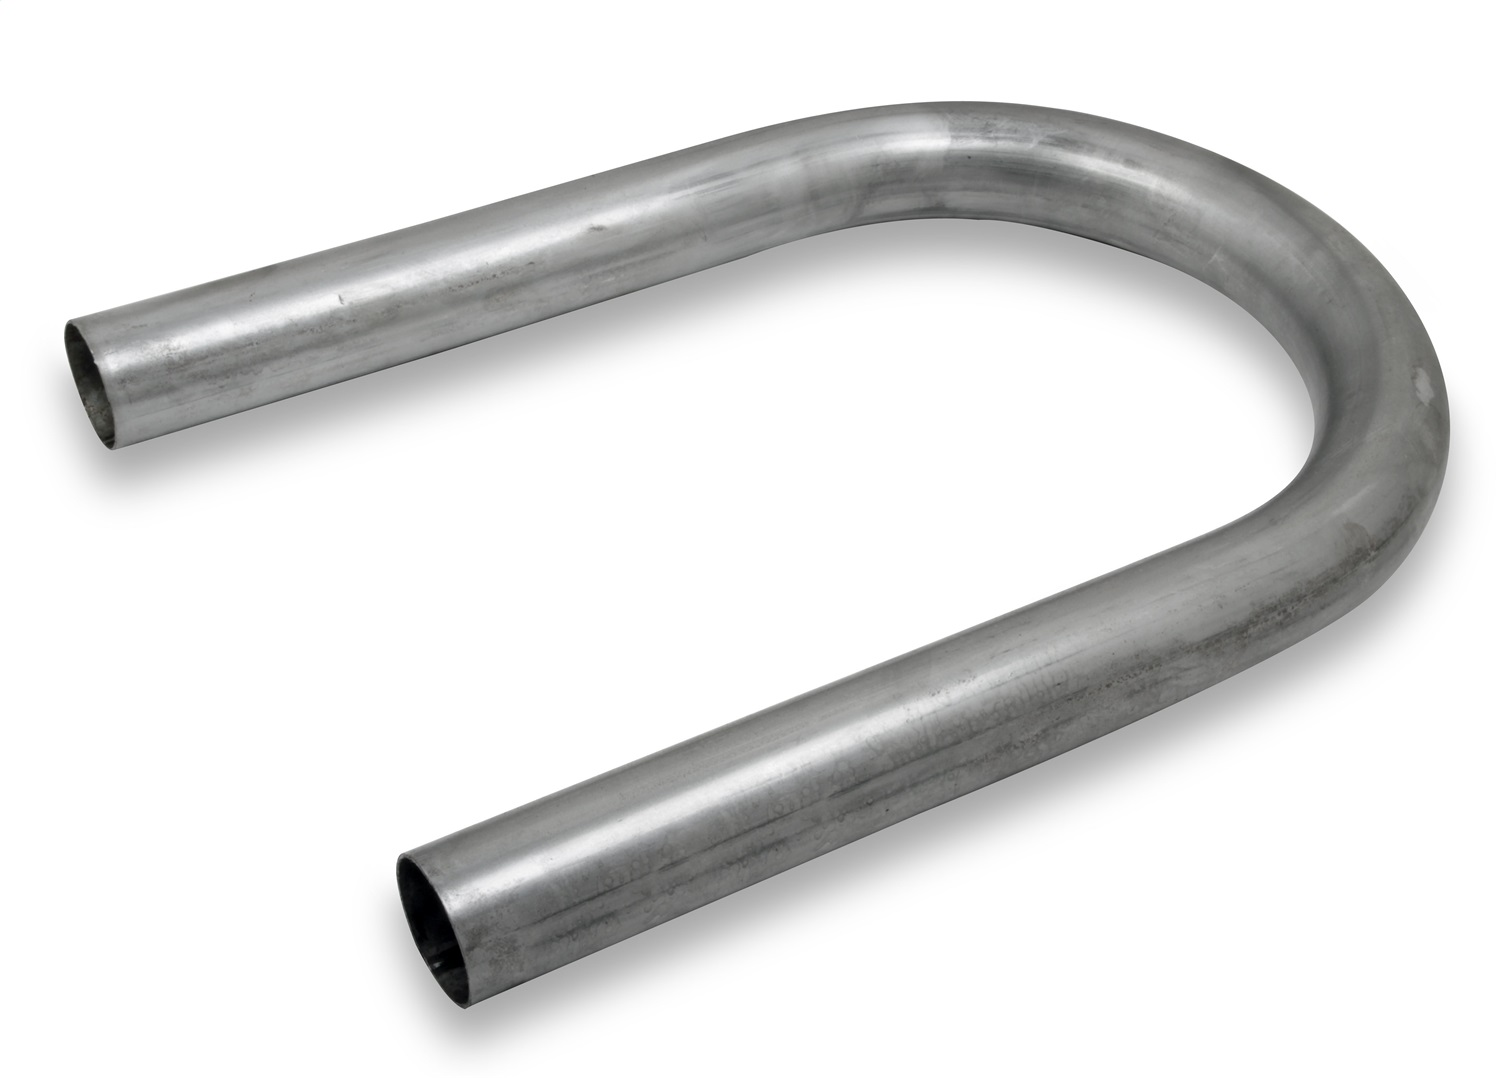 Hooker Headers 12340HKR Super Competition U-Bend Tube